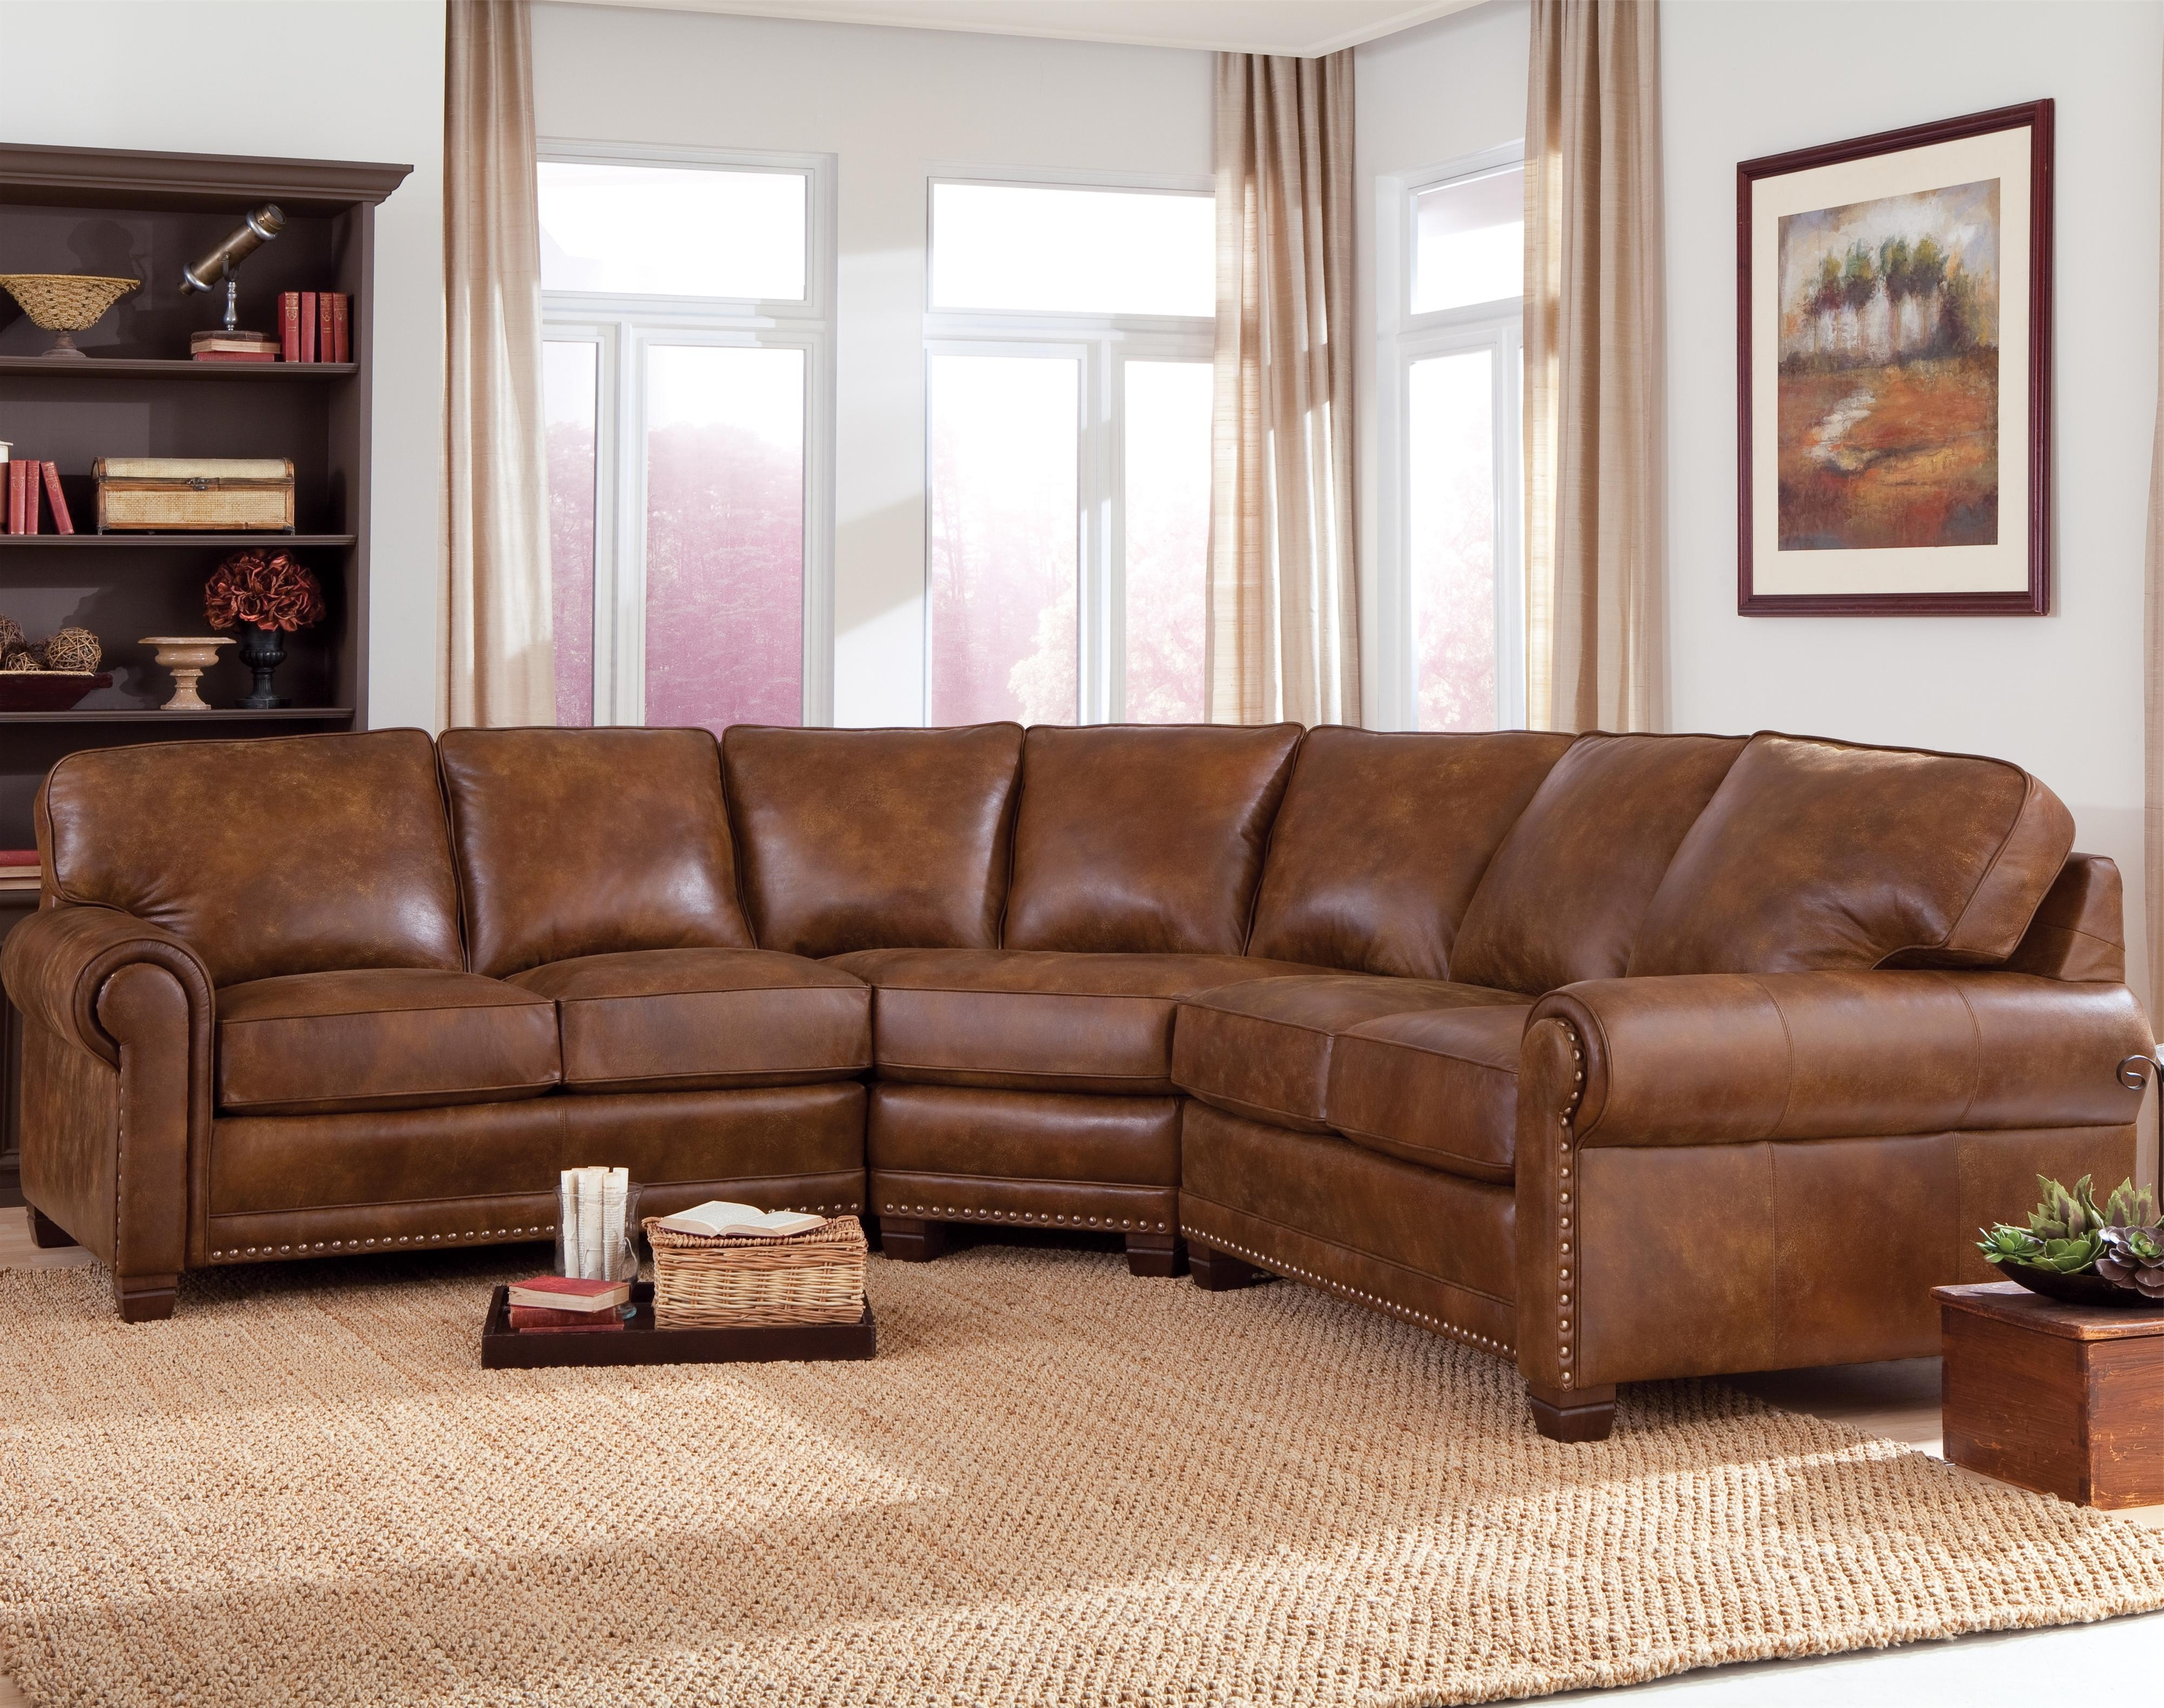 Traditional 3 Piece Sectional Sofa With Nailhead Trimsmith In Famous Sectional Sofas With Nailhead Trim (View 7 of 15)